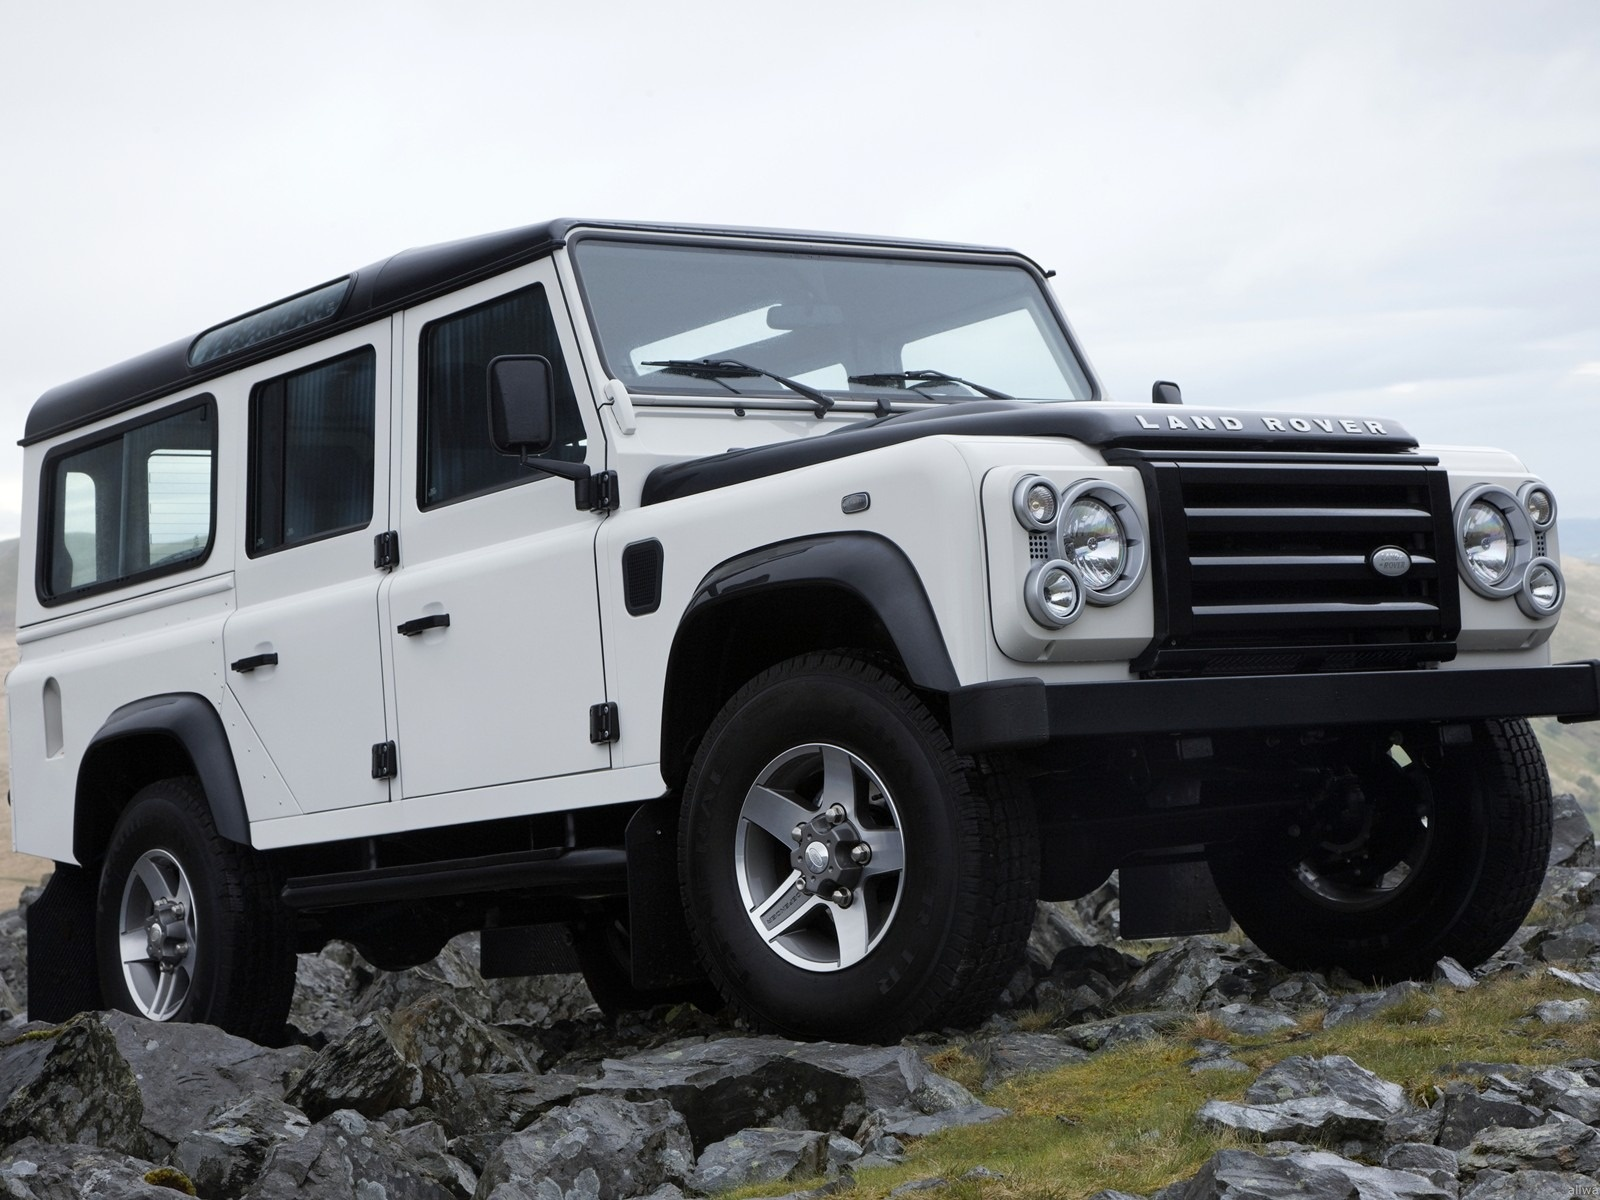 click to free download the wallpaper--Top Cars Pic, Land Rover in Jeep Front, Steady Run on Big Rocks 1600X1200 free wallpaper download